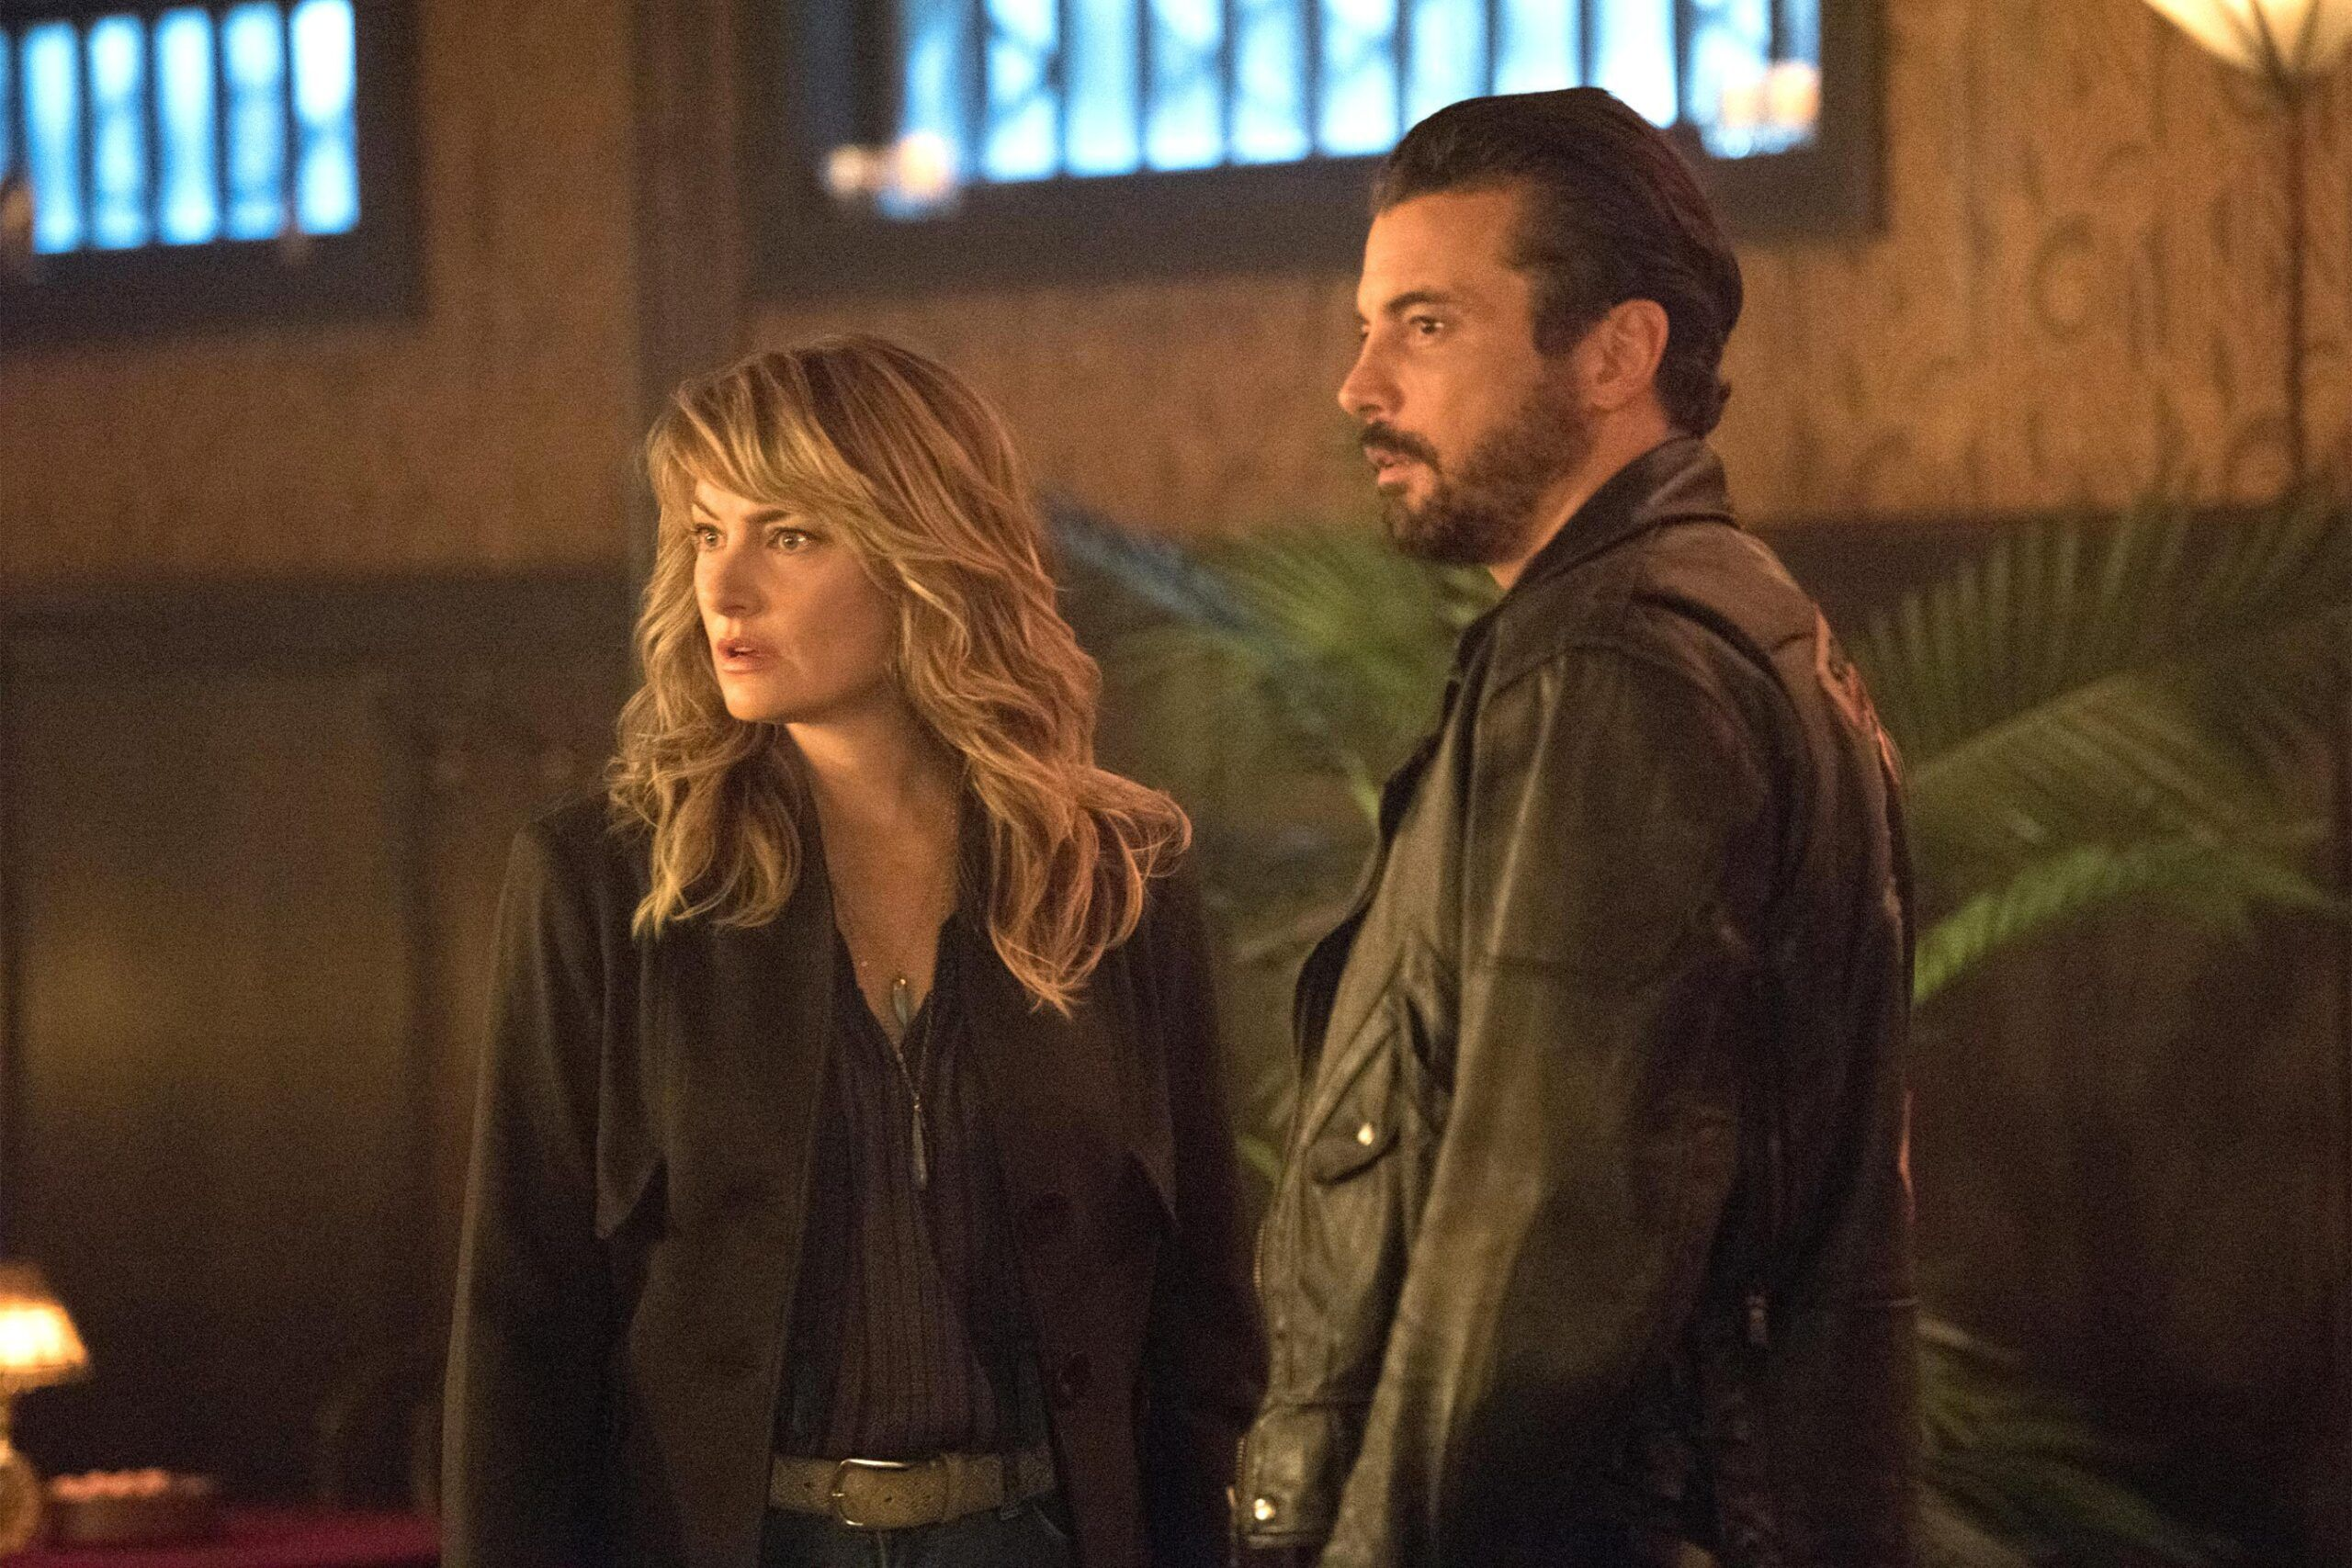 Skeet Ulrich Officially Says Goodbye To 'Riverdale' - Fame10